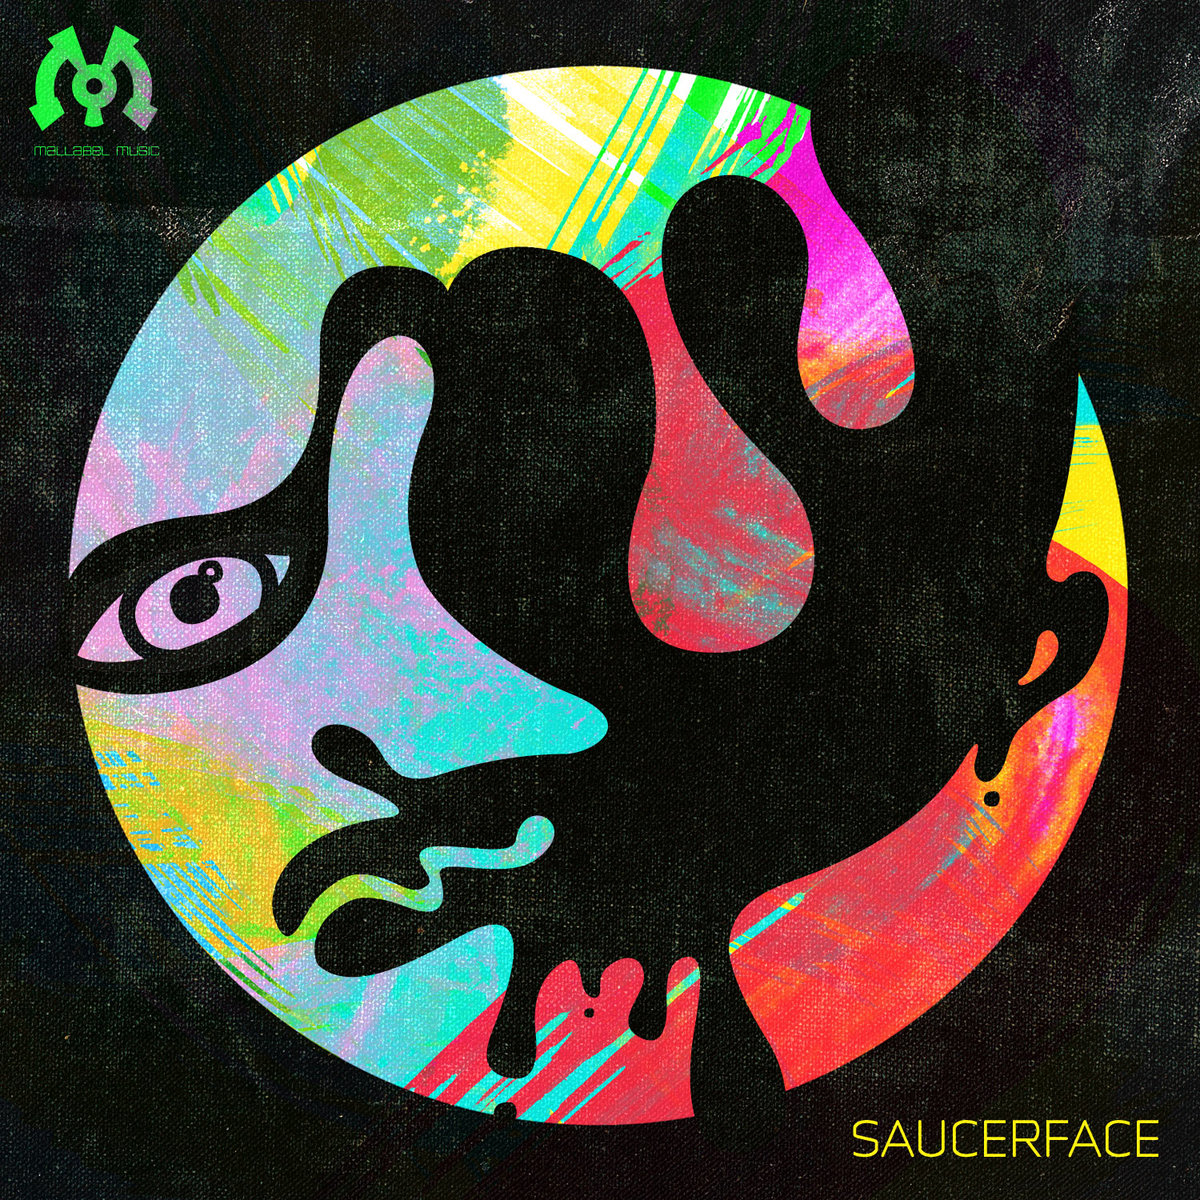 Bad Media - Time To Kill @ 'Various Artists - Saucerface' album (electronic, dubstep)